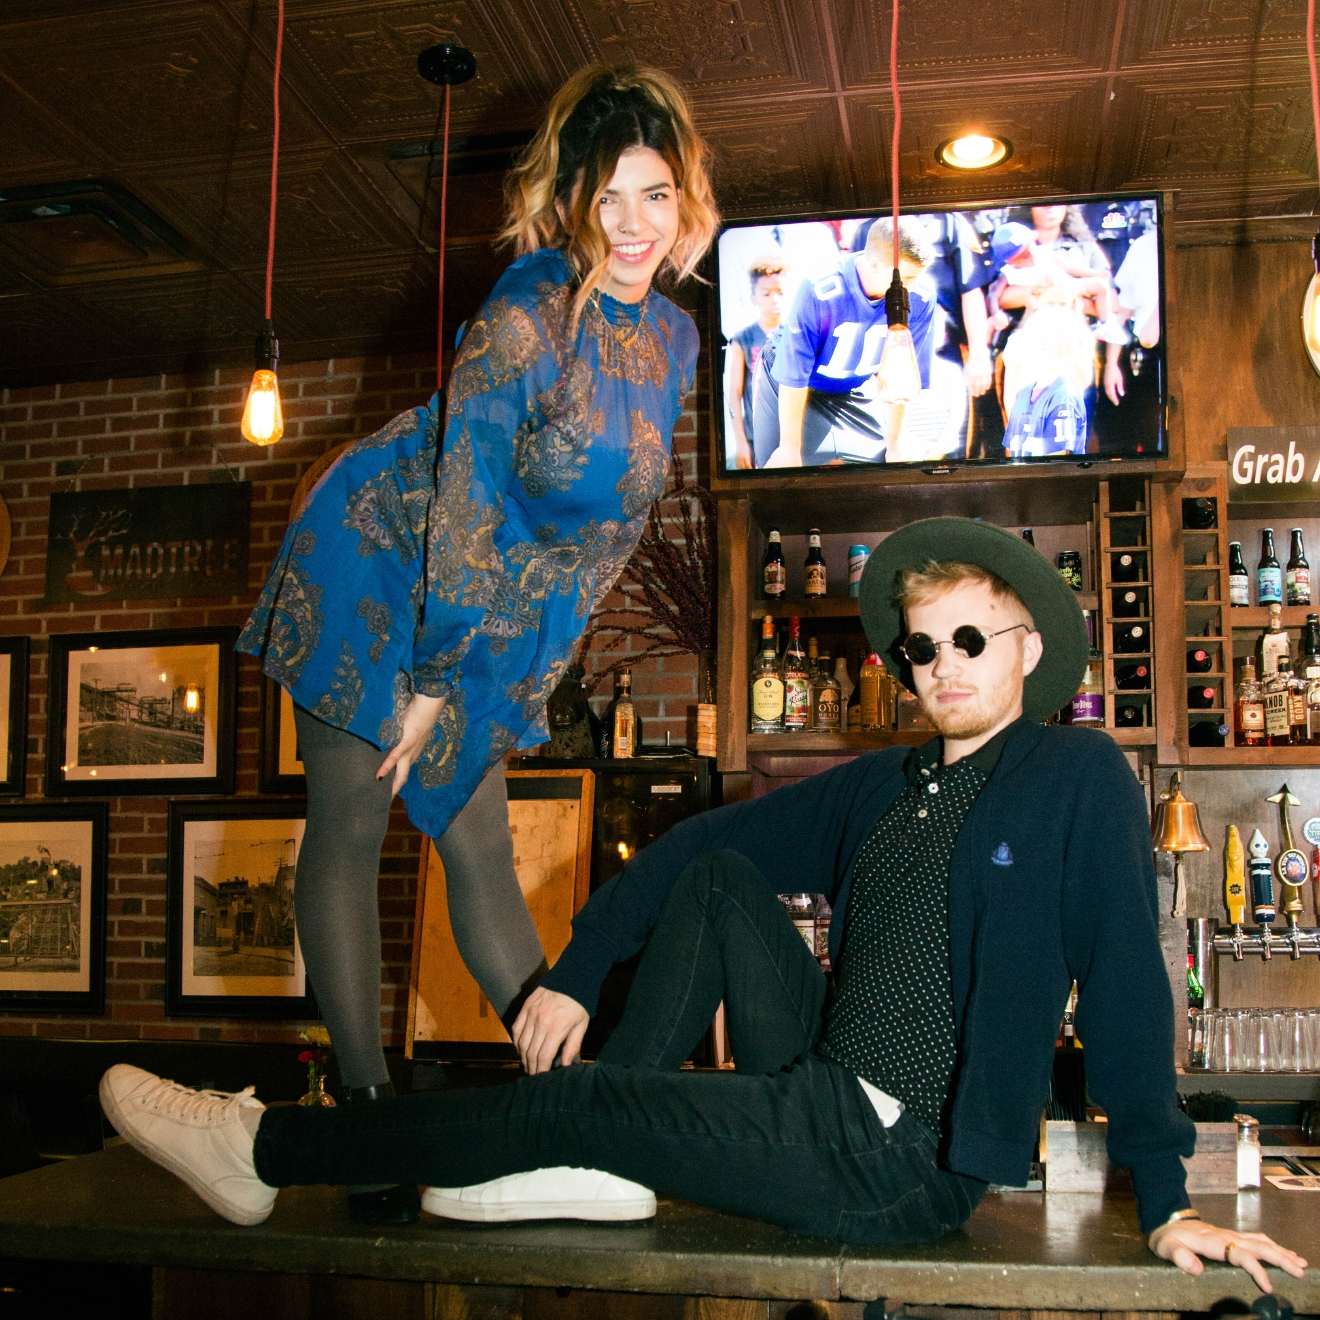 Becca Cowles in a Free People dress with accessories from etsy along with Garrett Douthitt in a hat from Zara, and outfit pieces from Izod, Levis, and Old Navy at Incline Public House. / Image: Catherine Viox // Published: 12.23.16